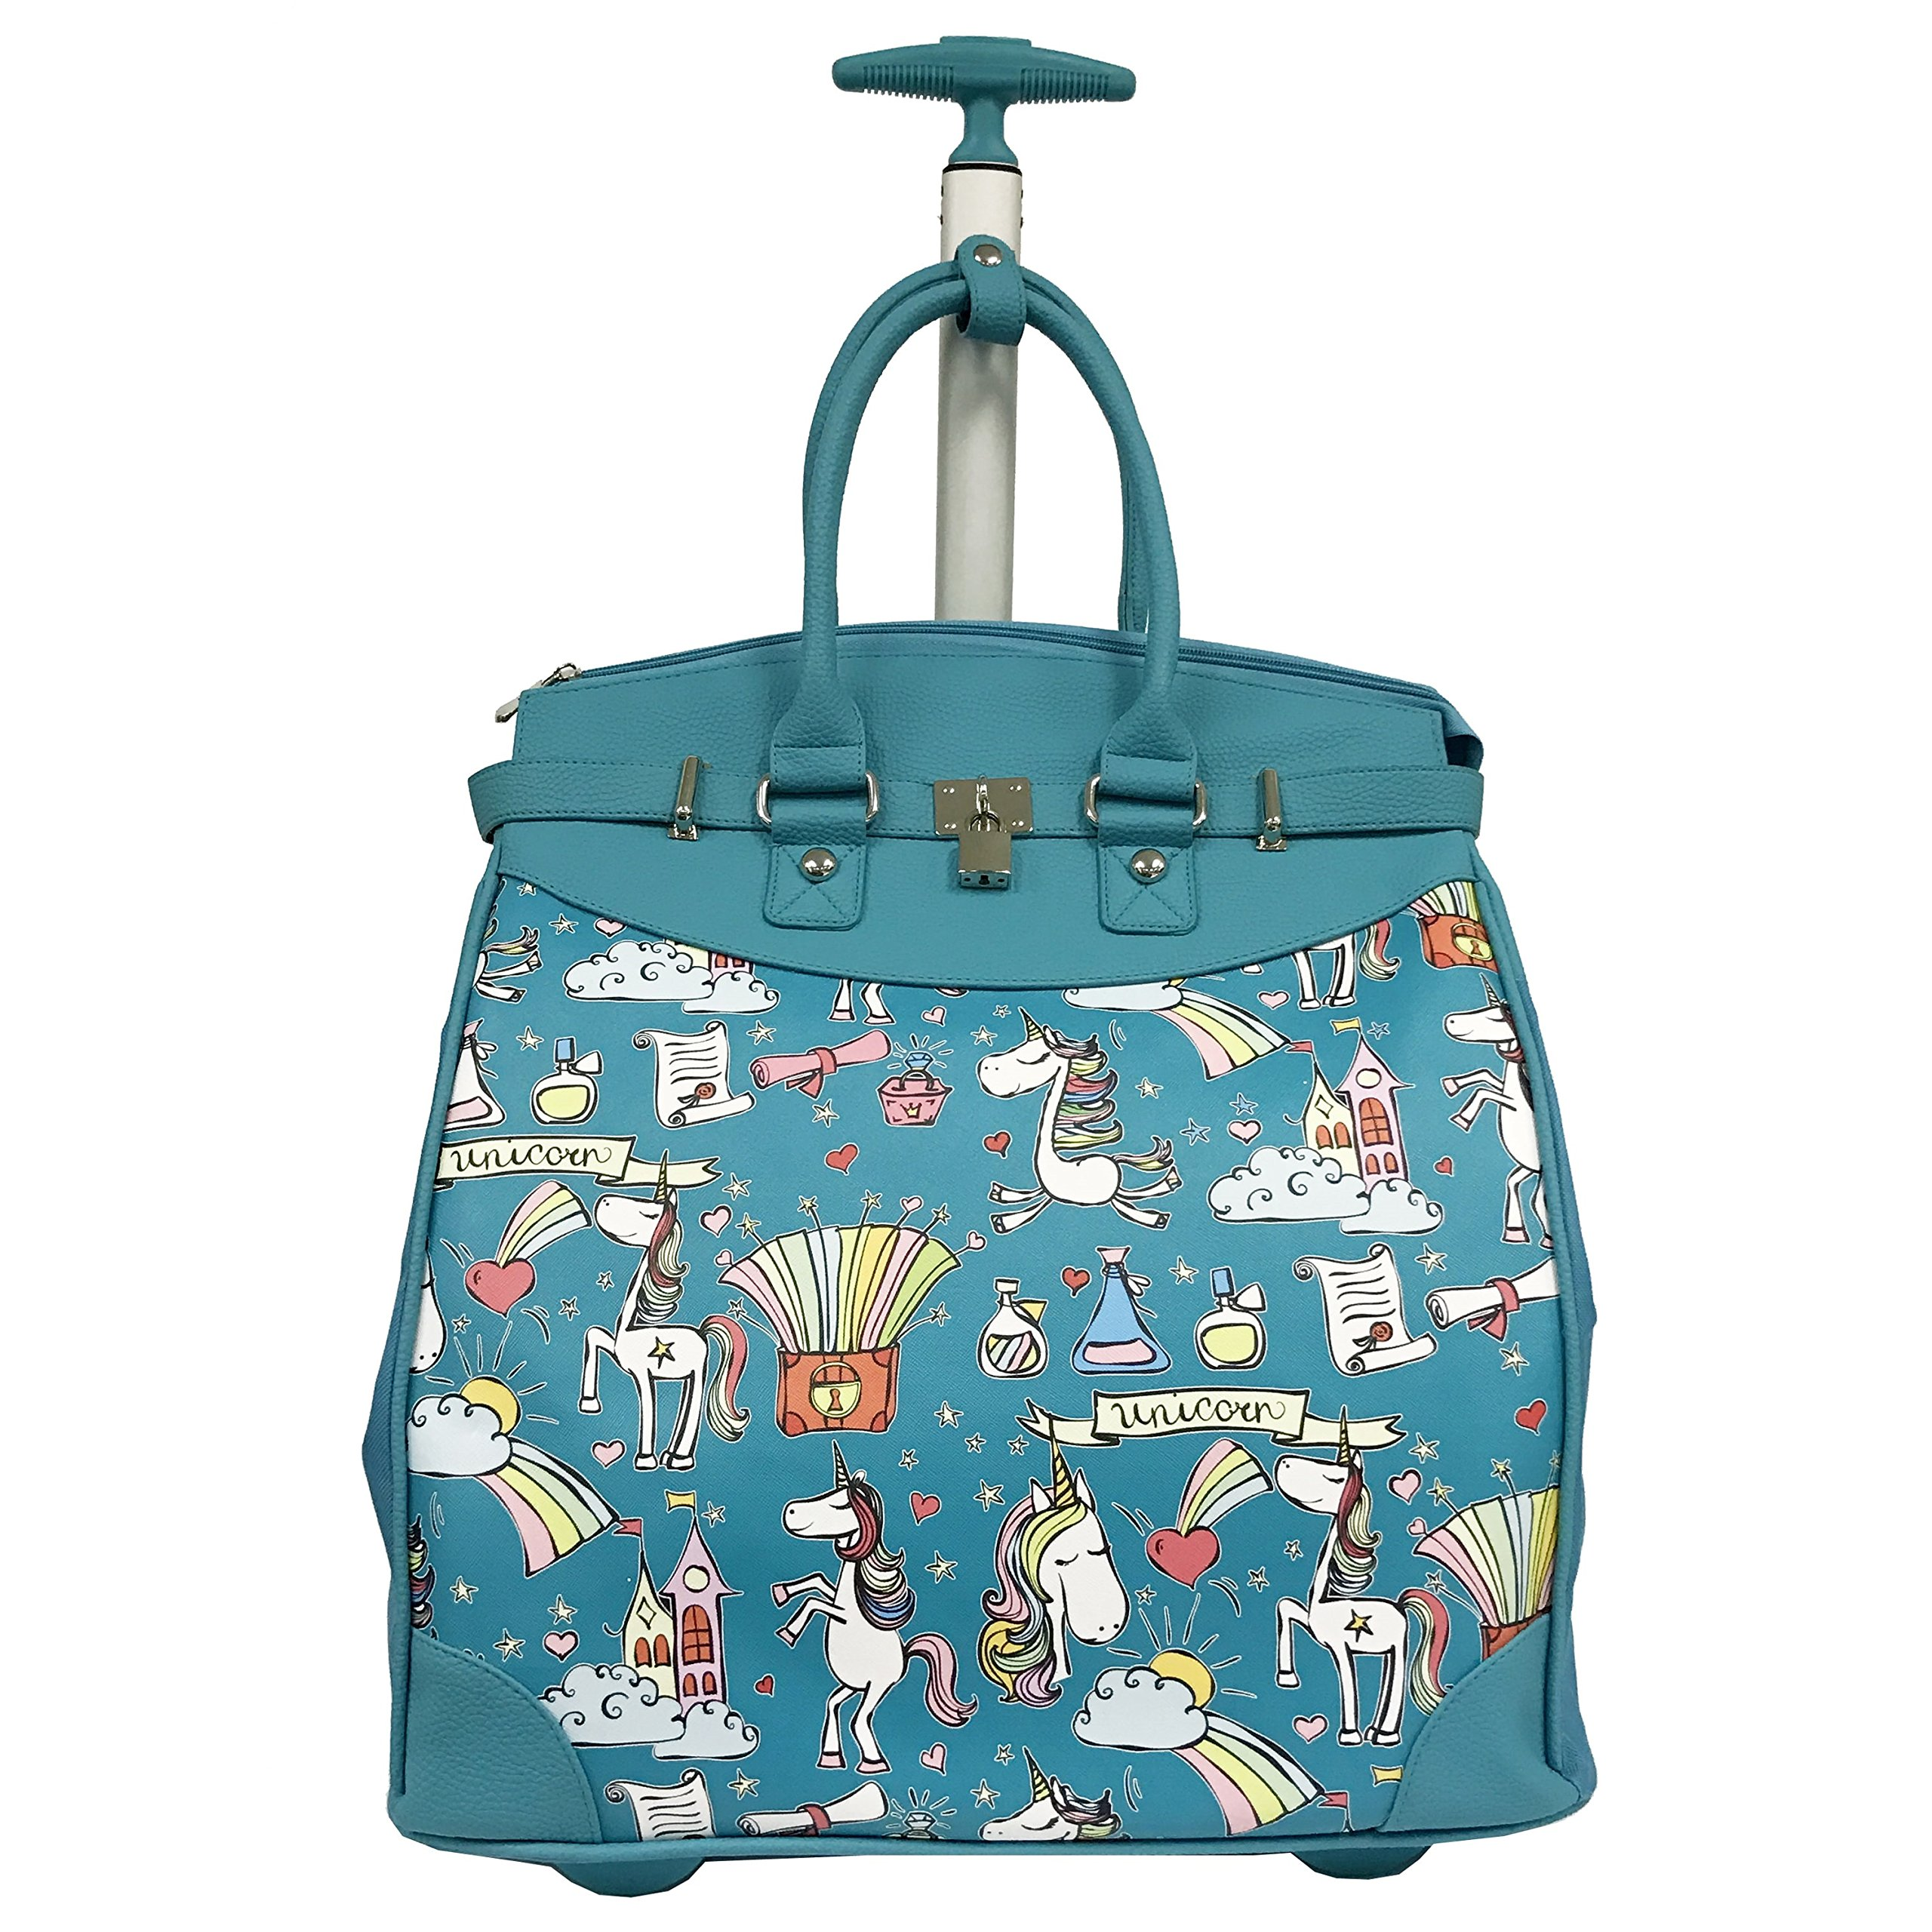 Magical Castel Unicorn Motif Carry On Rolling Foldable Laptop Tote, Softside Graphic Rainbow Animals Horses Theme, Multi Compartment, Fashionable, Checkpoint Friendly Soft Travel Bag, Teal, Size 14'' by S & E